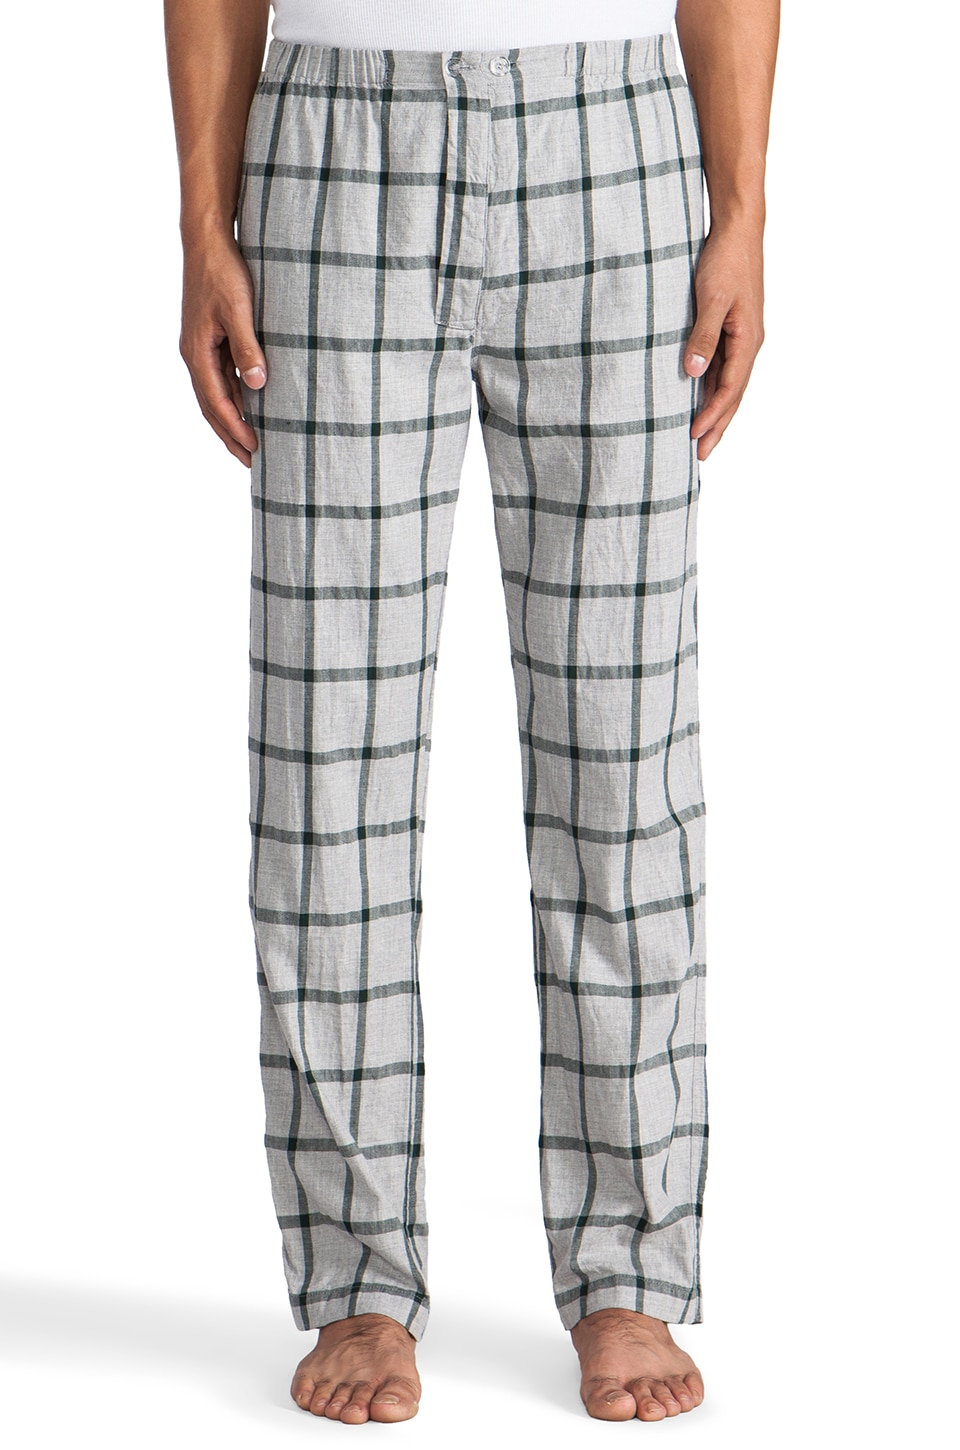 Steven Alan Plaid PJ Pant in Grey/Green